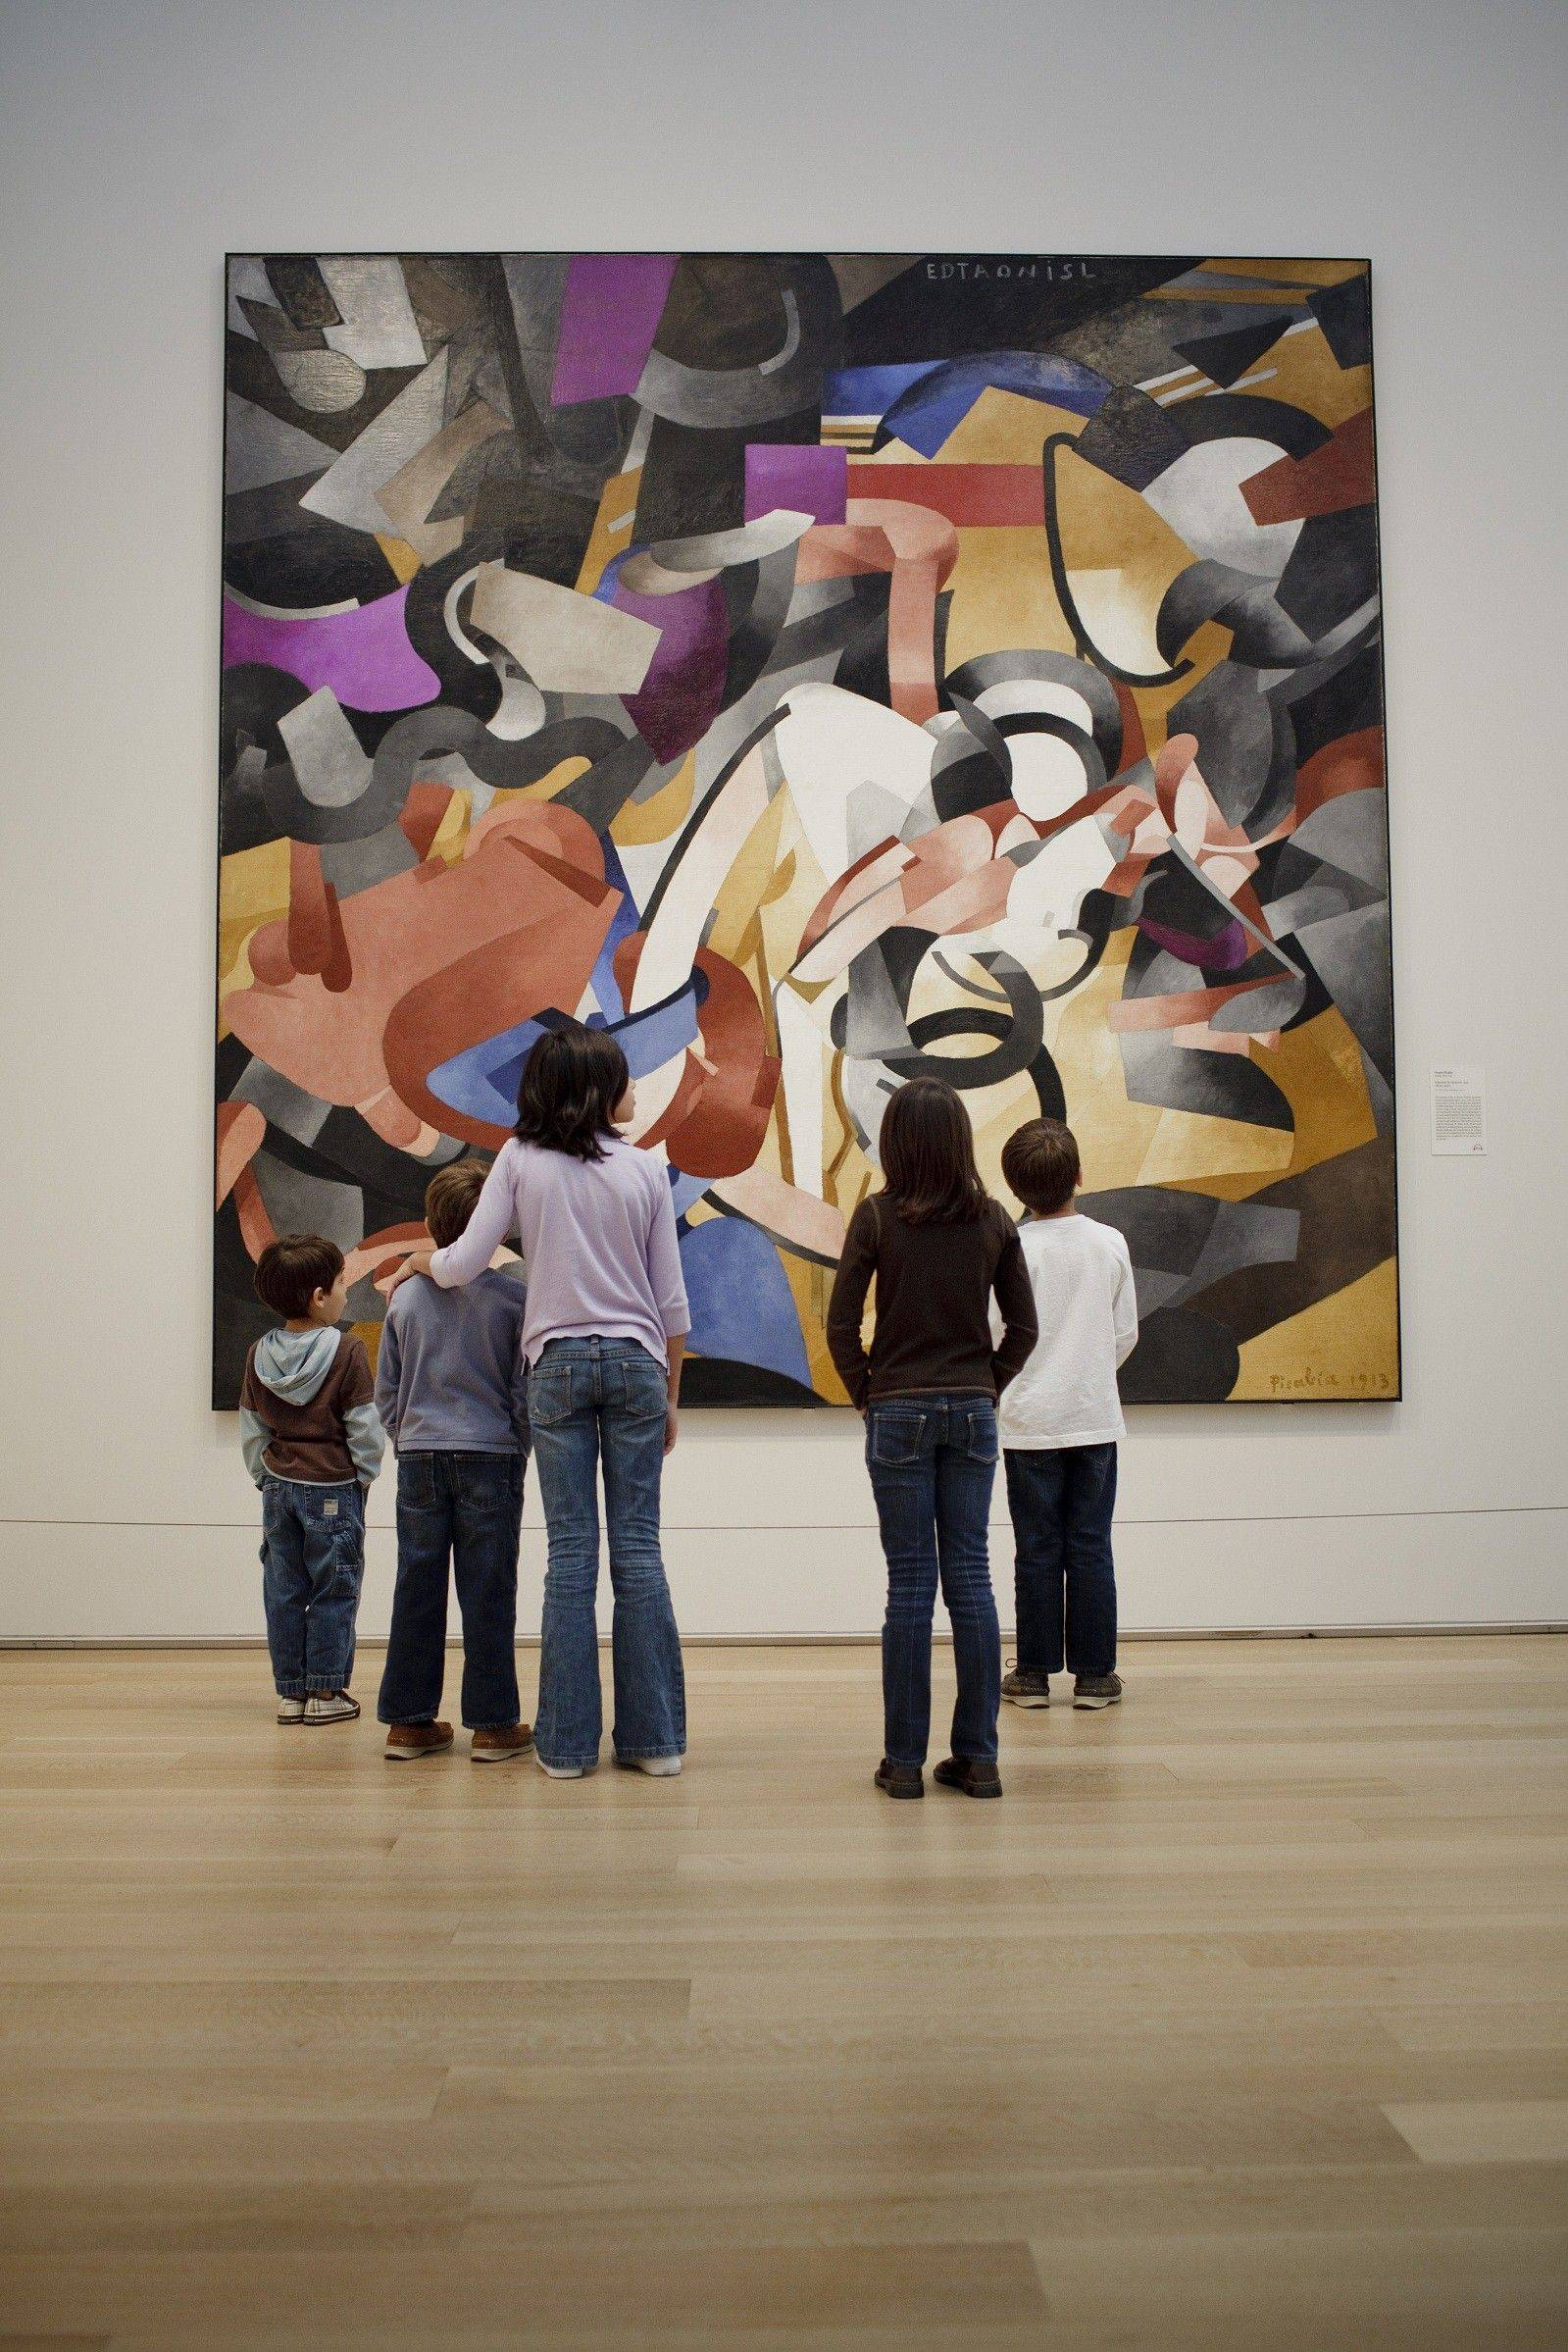 Enjoy free admission for Illinois residents every weekday through Feb. 10 at the Art Institute of Chicago.